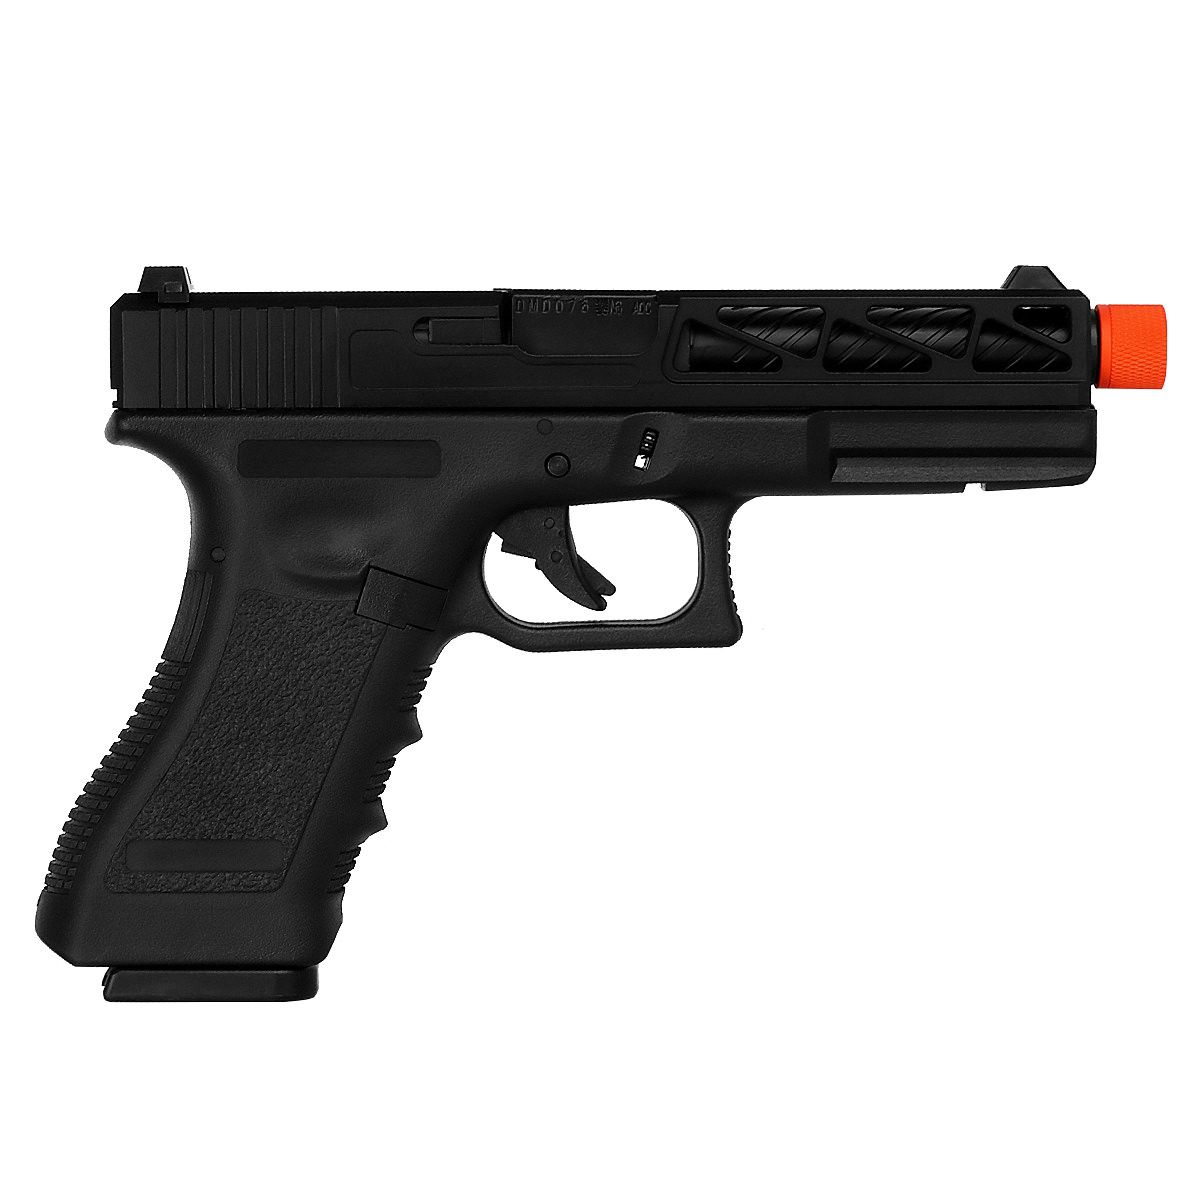 Pistola Glock R17-3 GBB Exquelector - Army Armament - Metal